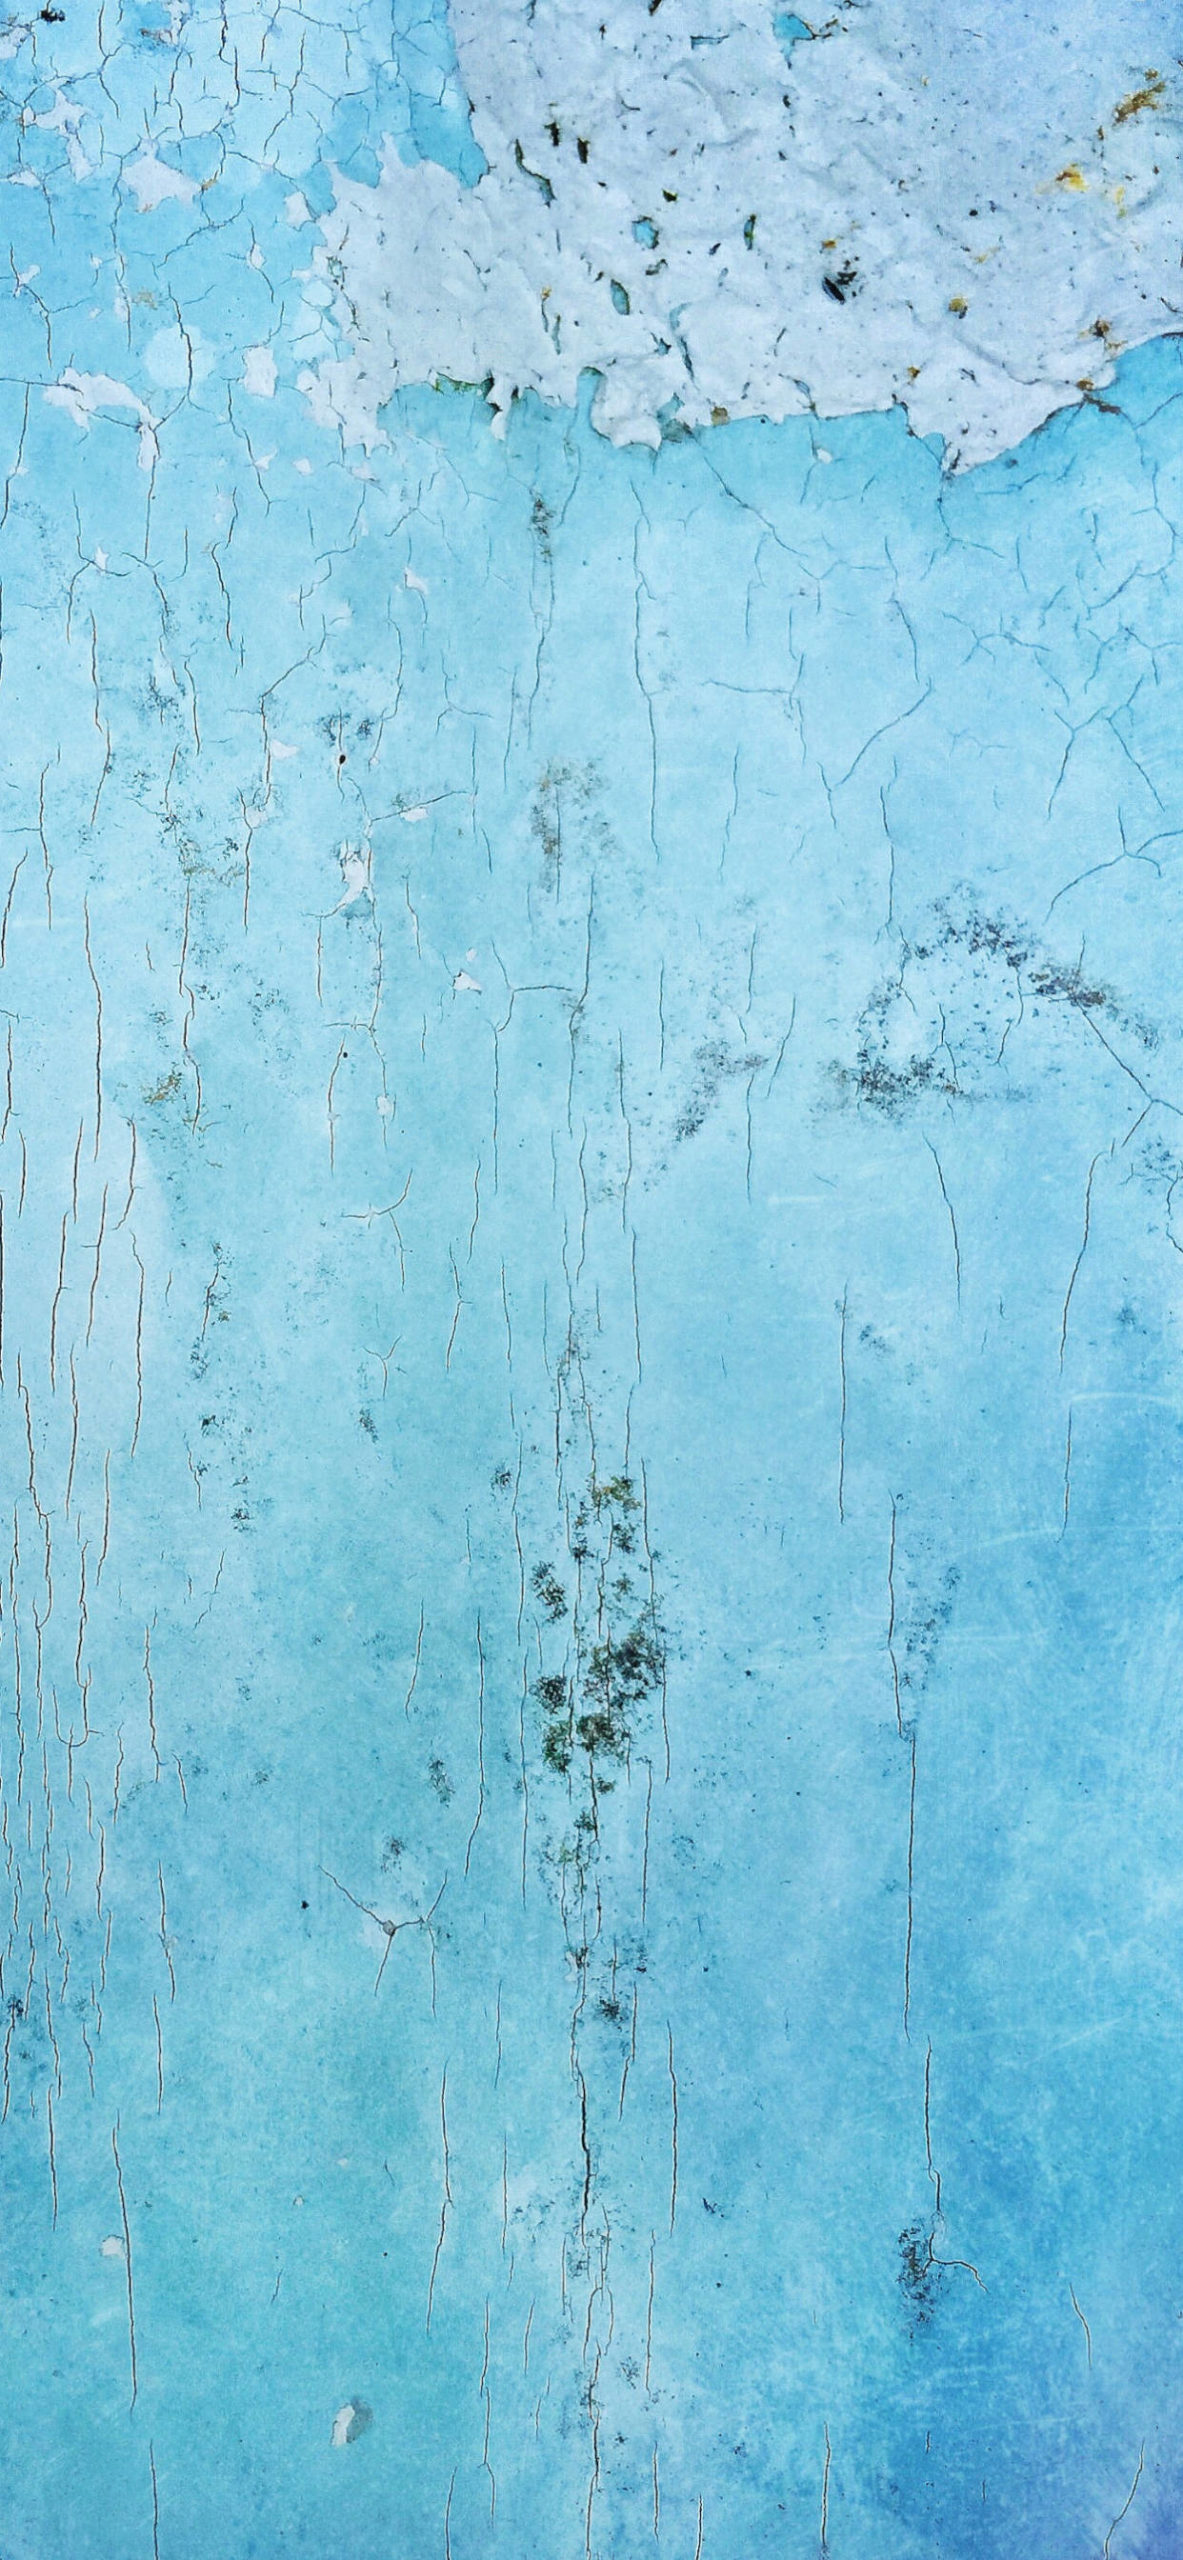 iPhone wallpapers textures blue wall scaled Texture